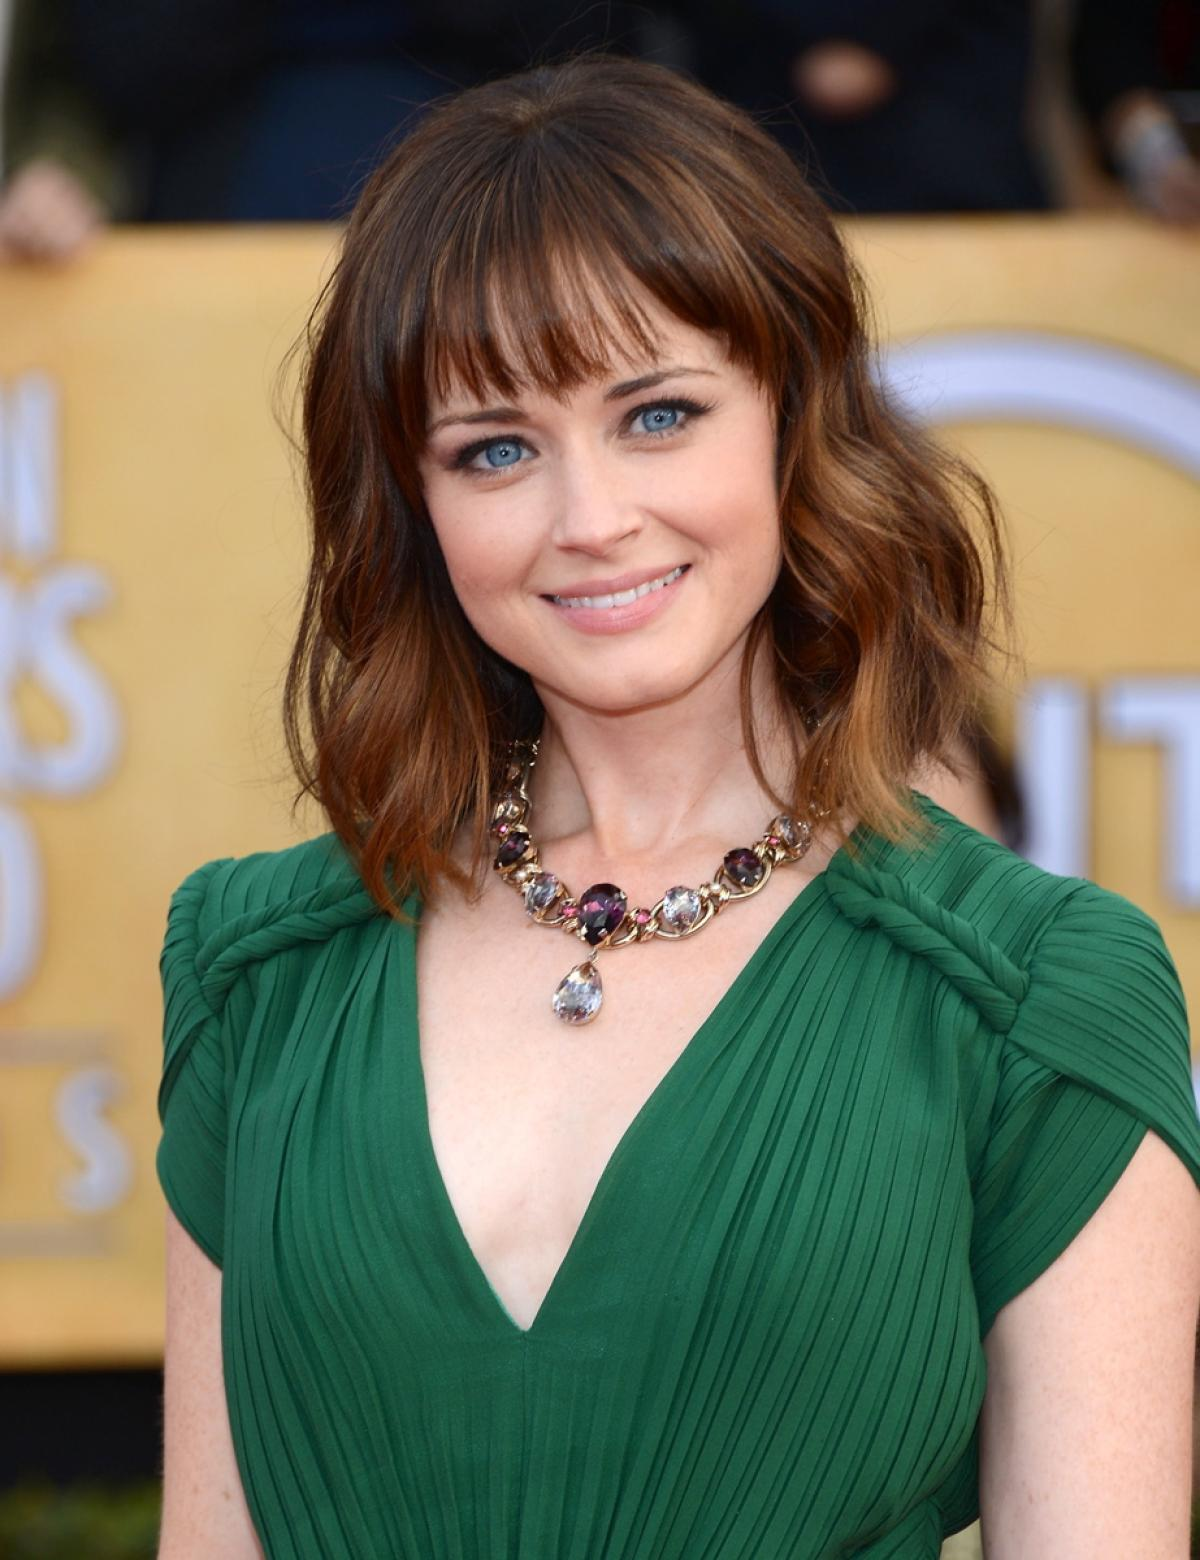 Pictures Alexis Bledel nude photos 2019